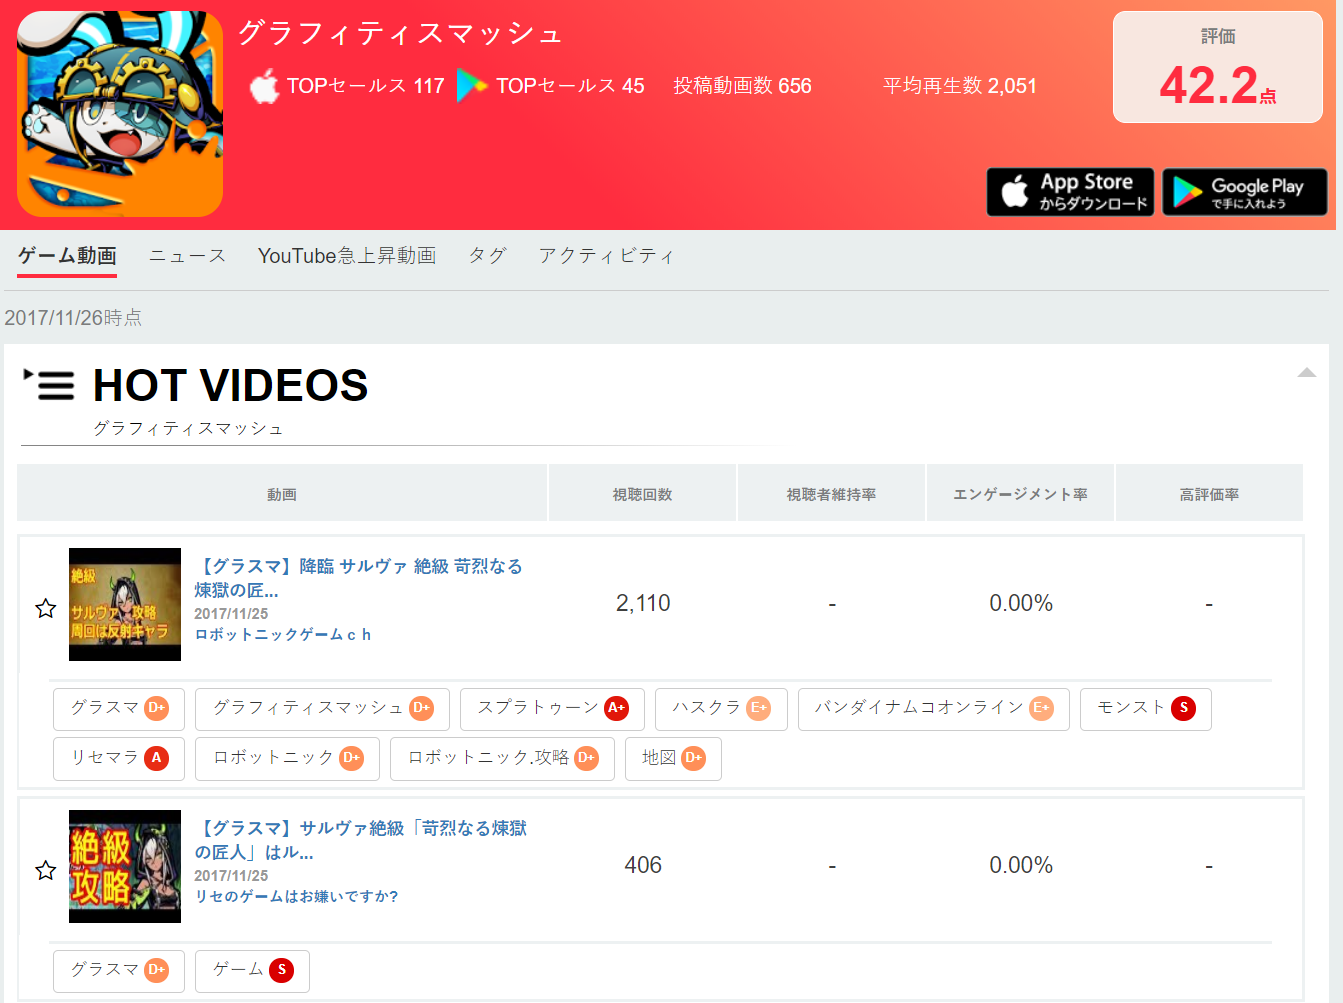 "【Recommended games】驚異的な爽快感にハマるYouTuberも多数!""引っ張り×塗り""の新感覚アクションゲーム『グラフィティスマッシュ』"